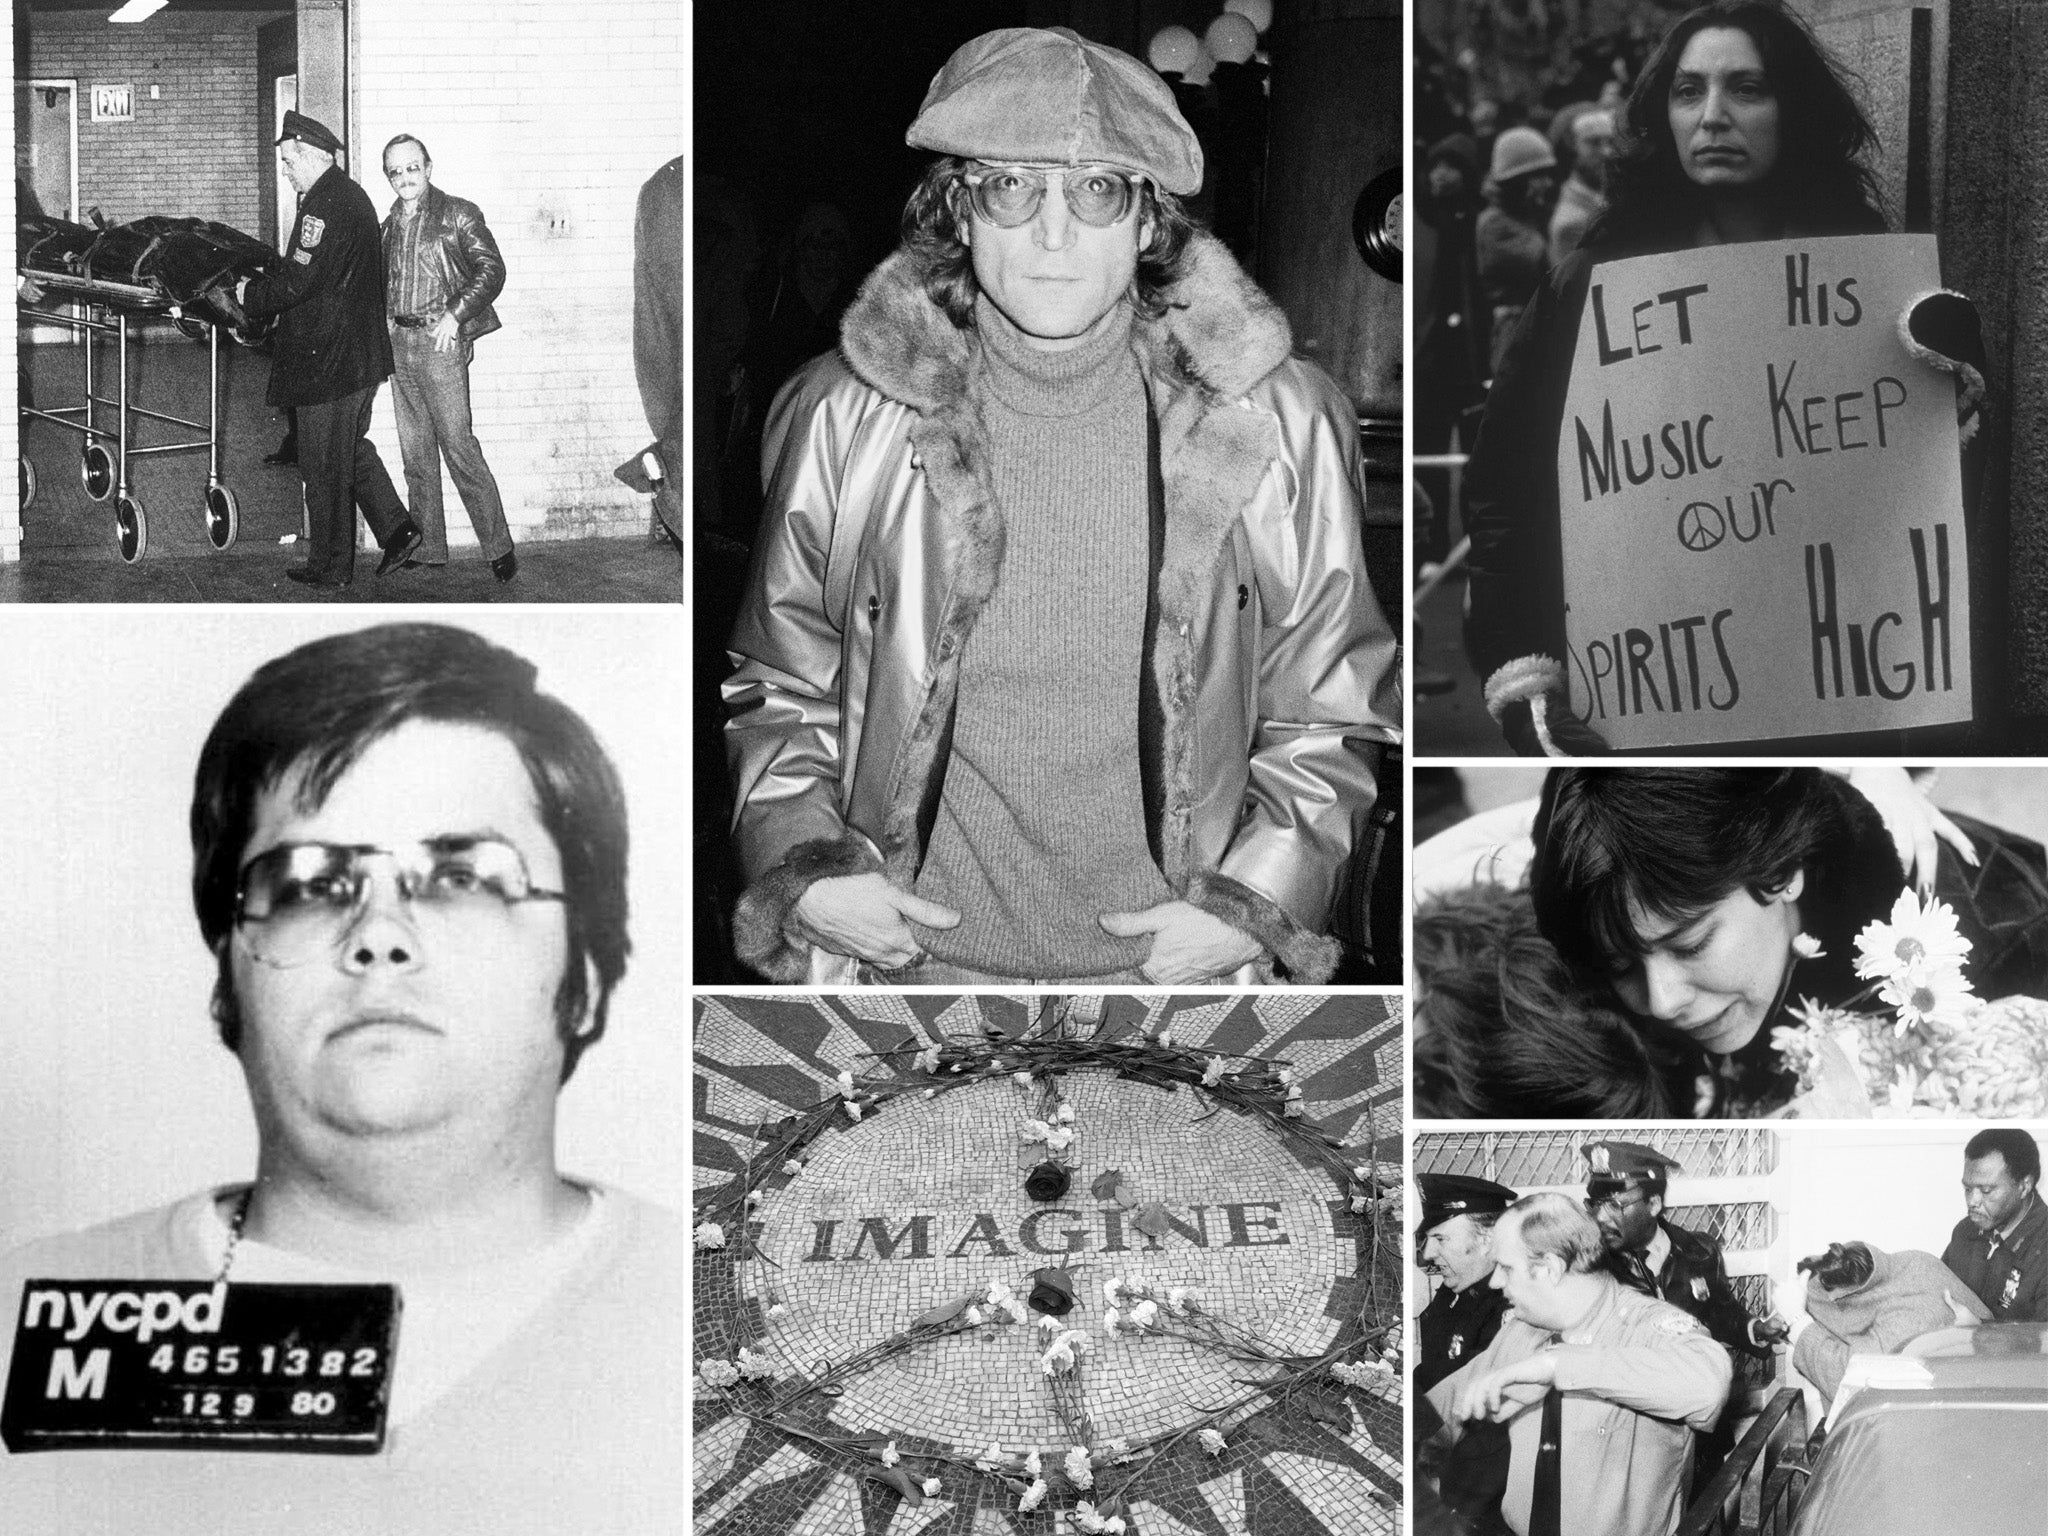 The Shooting Of John Lennon Will Mark David Chapman Ever Be Released The Independent The Independent